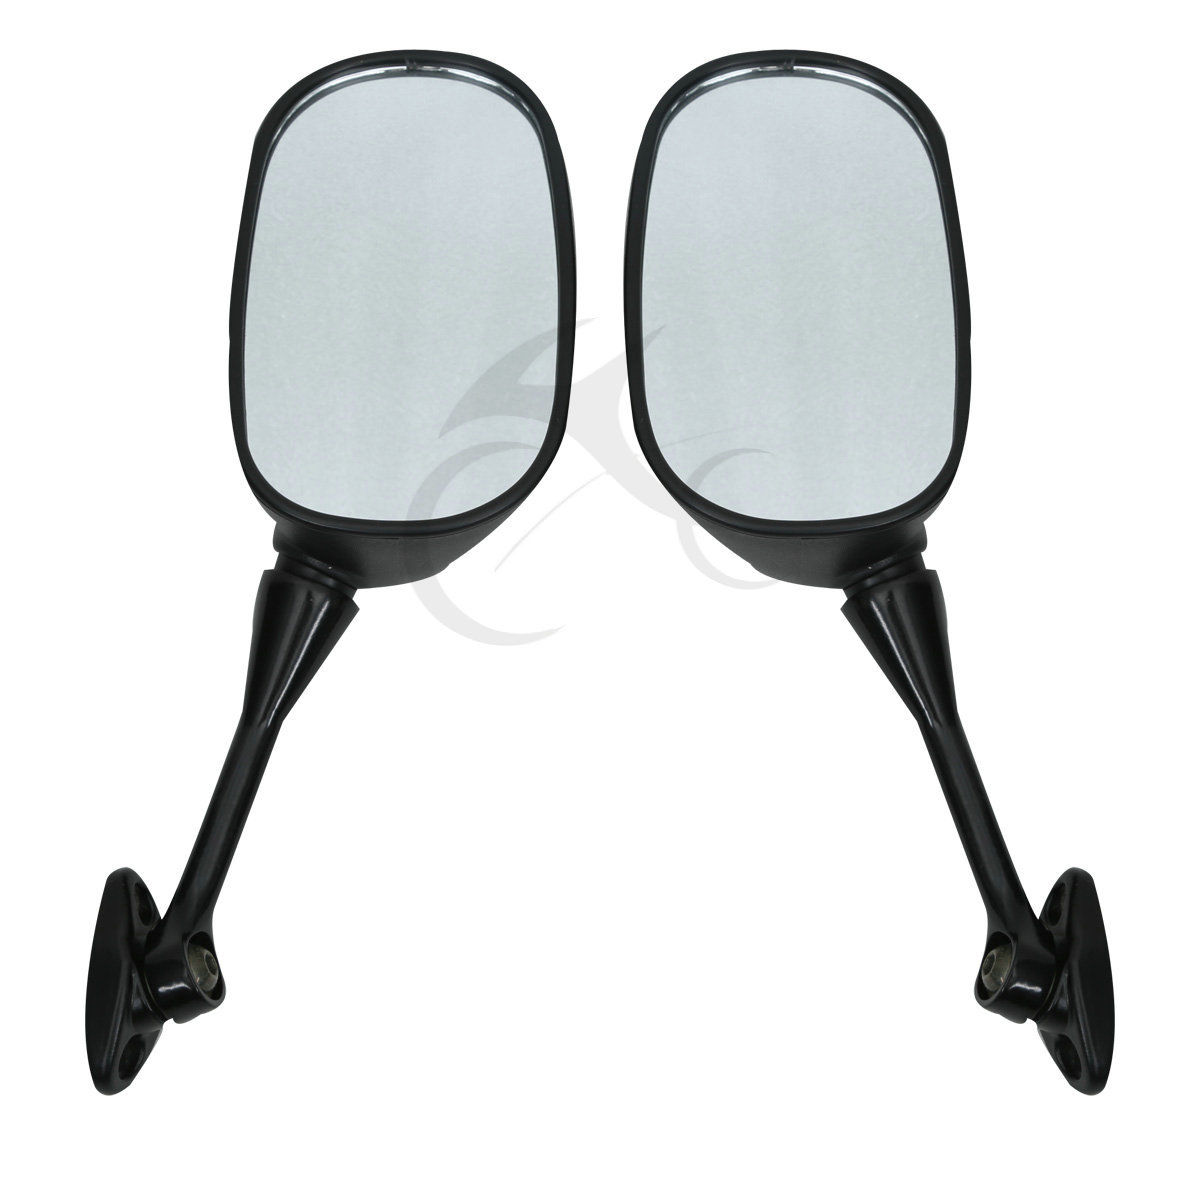 Awesome Rearview Side Mirrors For Honda Cbr600rr 2003 2014 Cbr1000rr 2004 2007 2005 2006 2018